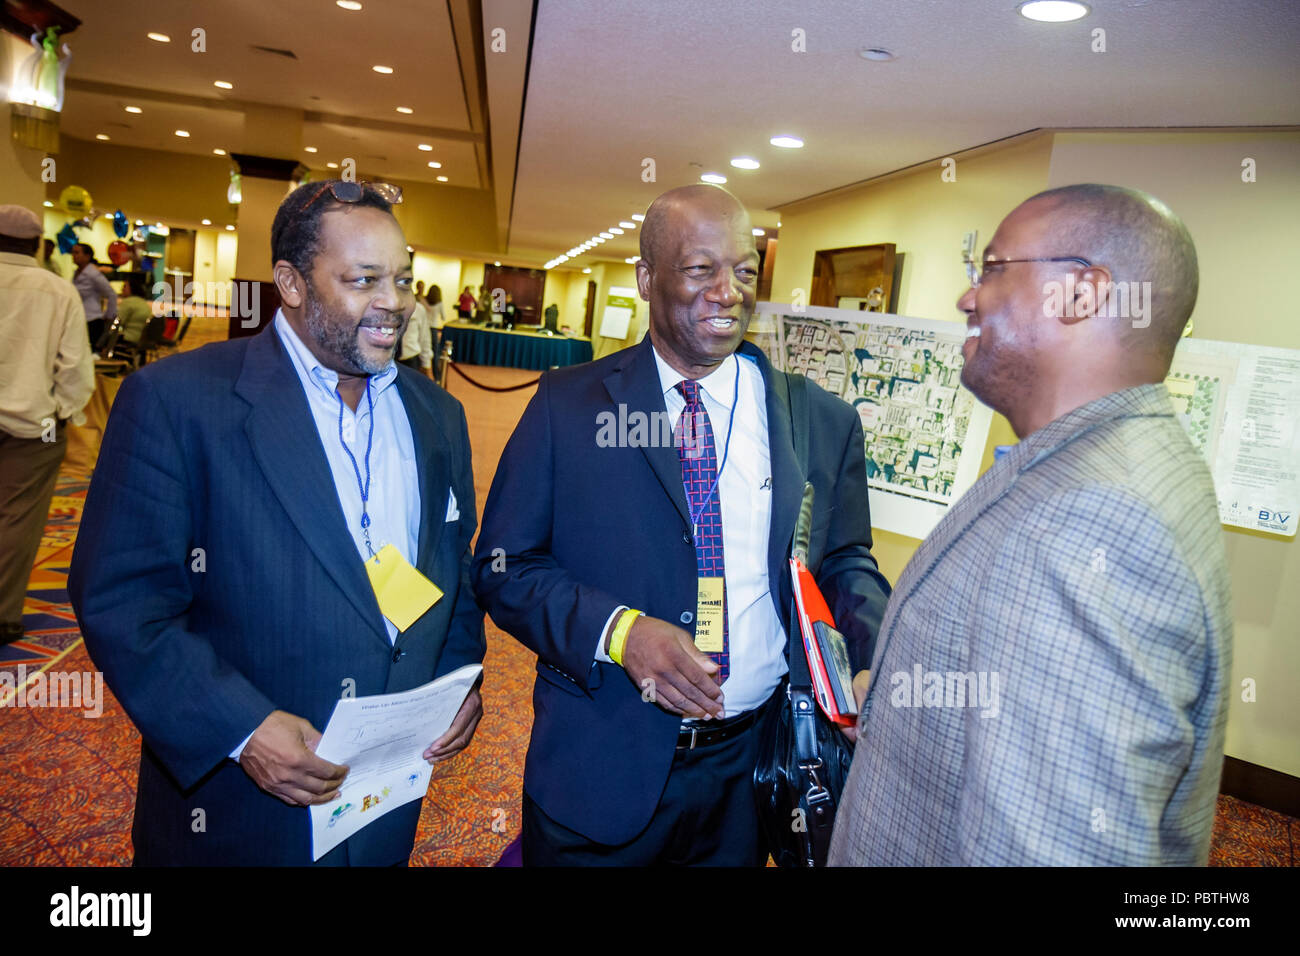 MiamiMiami Florida Downtown Hilton hotel Housing and Economic Development Expo Community Redevelopment Agency small business af - Stock Image